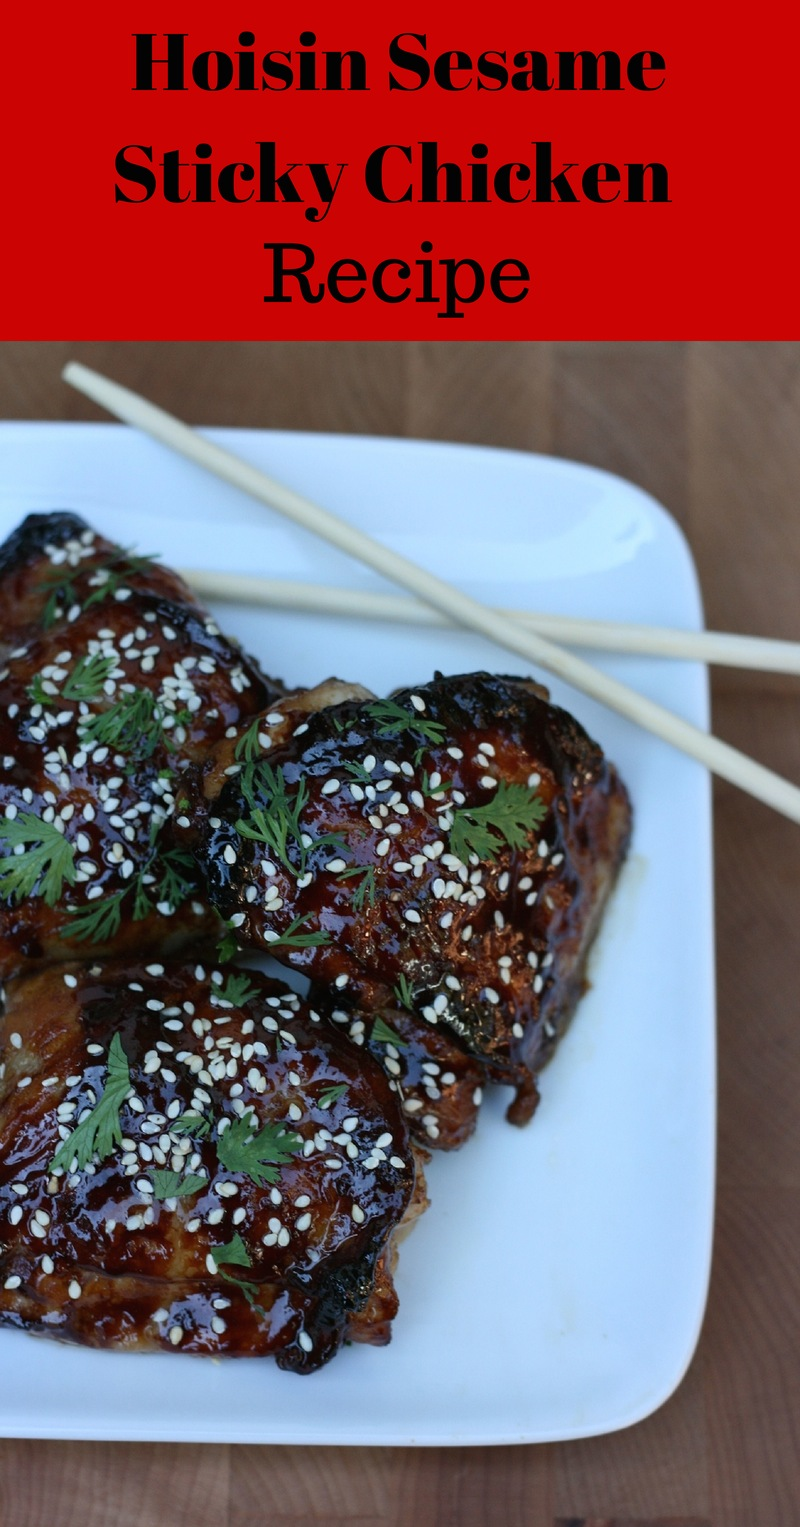 Quick and Easy Blue Dragon Hoisin Sesame Sticky Chicken Recipe #BlueDragonMom